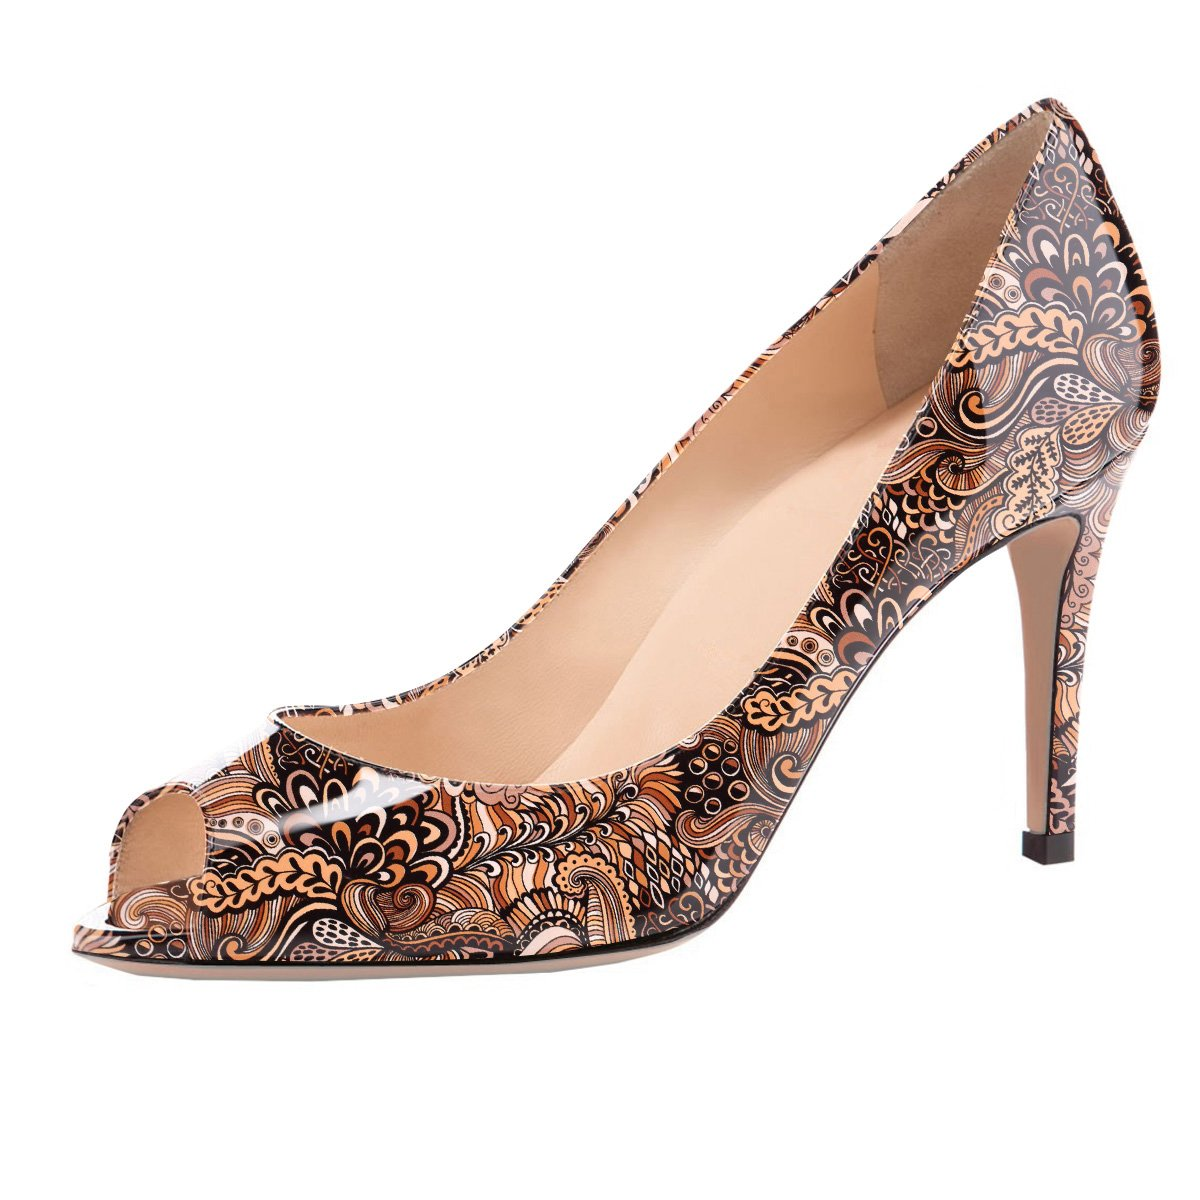 Eldof Women Peep Toe Pumps Mid-Heel Pumps Formal Wedding Bridal Classic Heel Open Toe Stiletto B07F3X8KVL 5 B(M) US|Brown-pattern